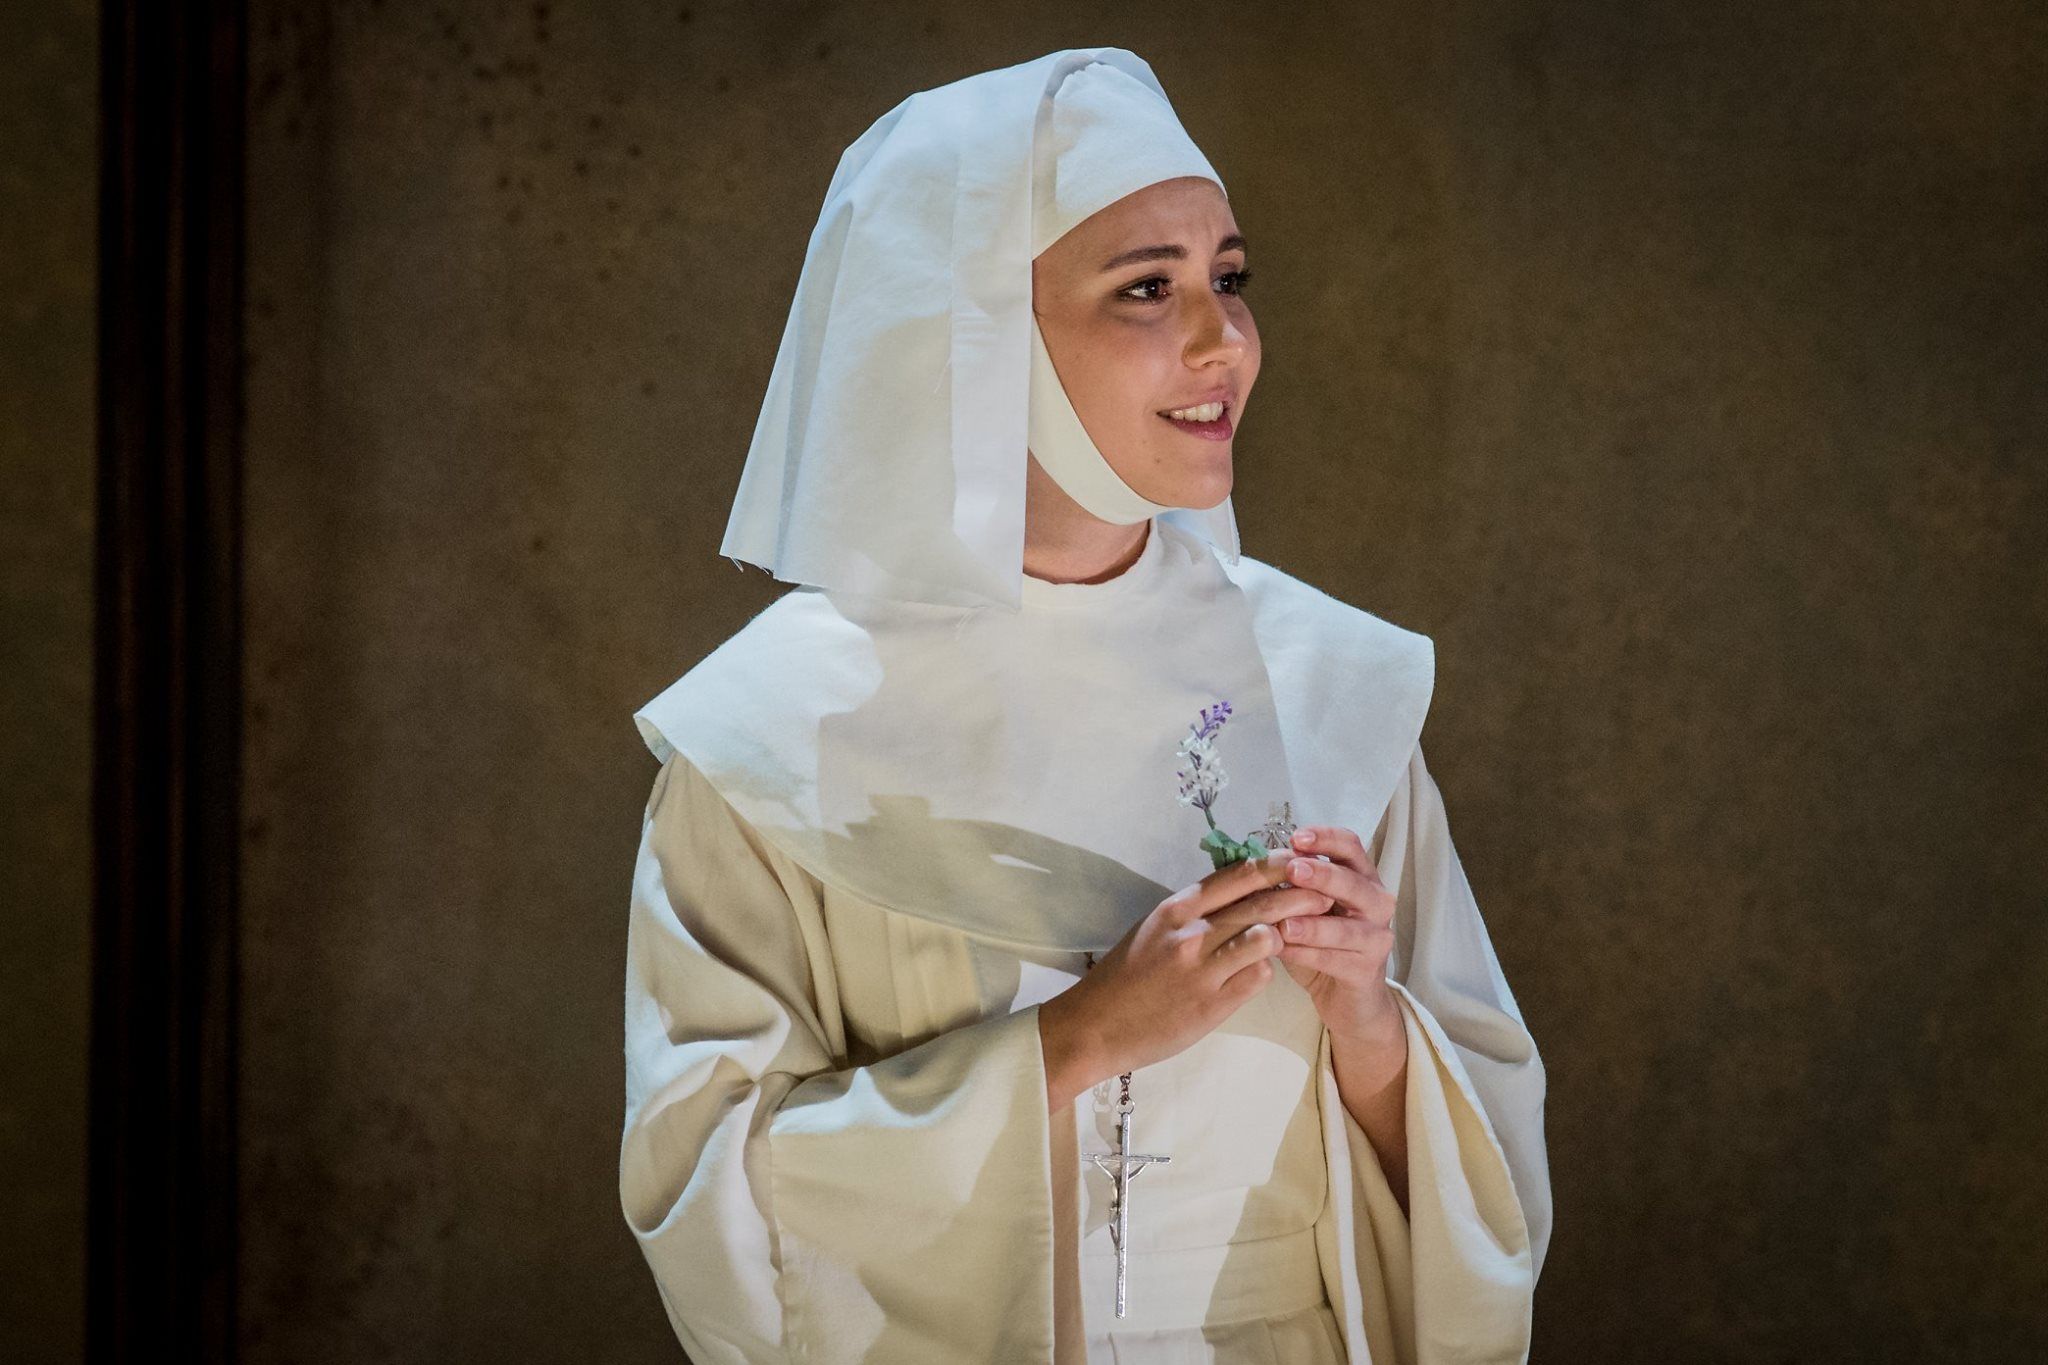 Suora infermiera in Suor Angelica 2018 (RNCM)